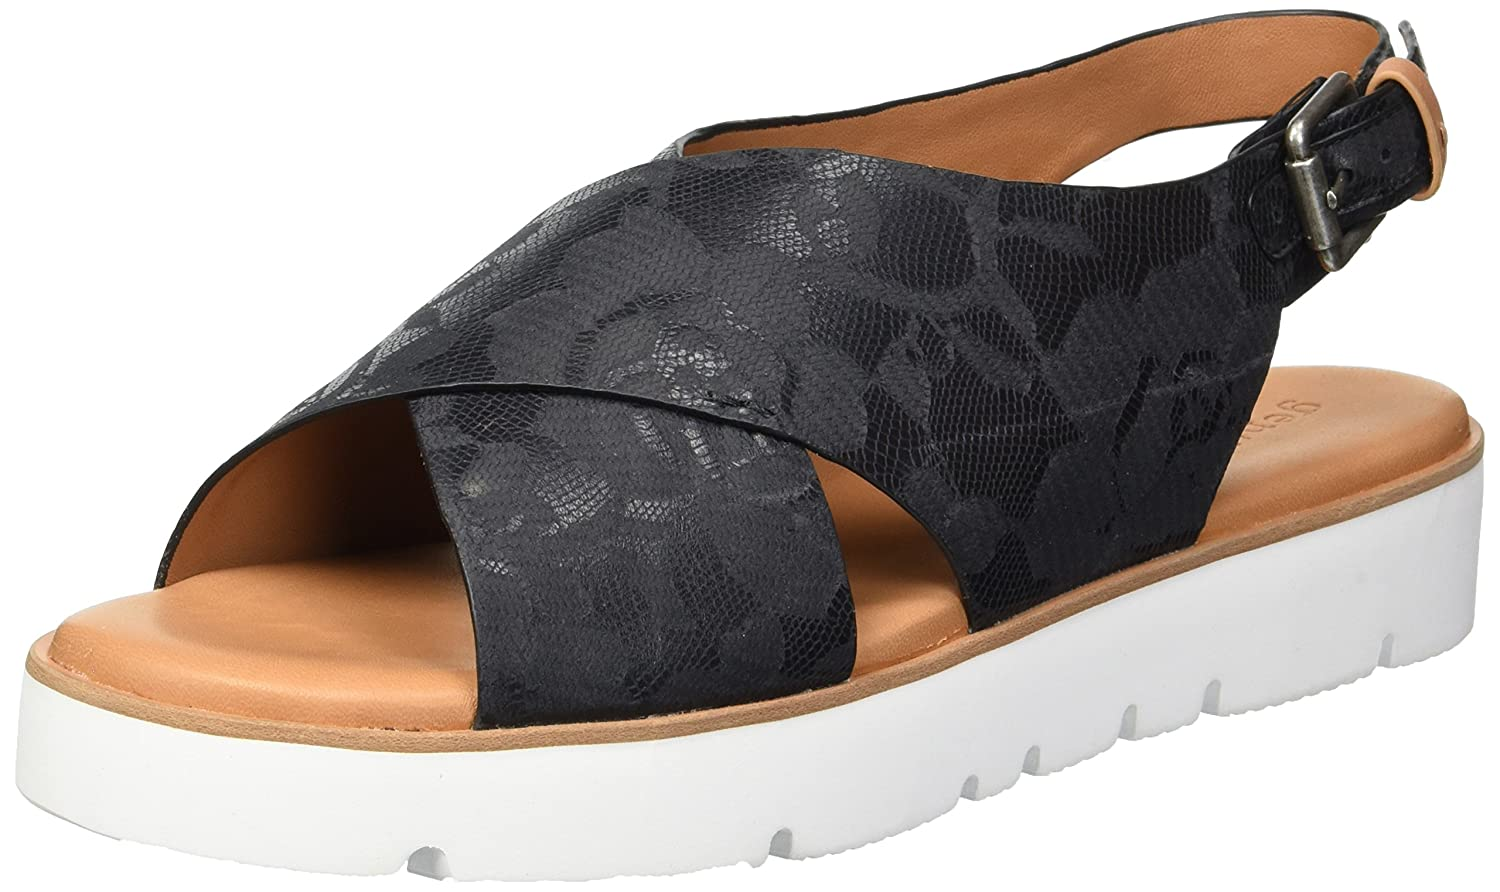 Gentle Souls by Kenneth Cole Women's Kiki Platform Sandal B0789W4RSY 9.5 M US|Black Printed